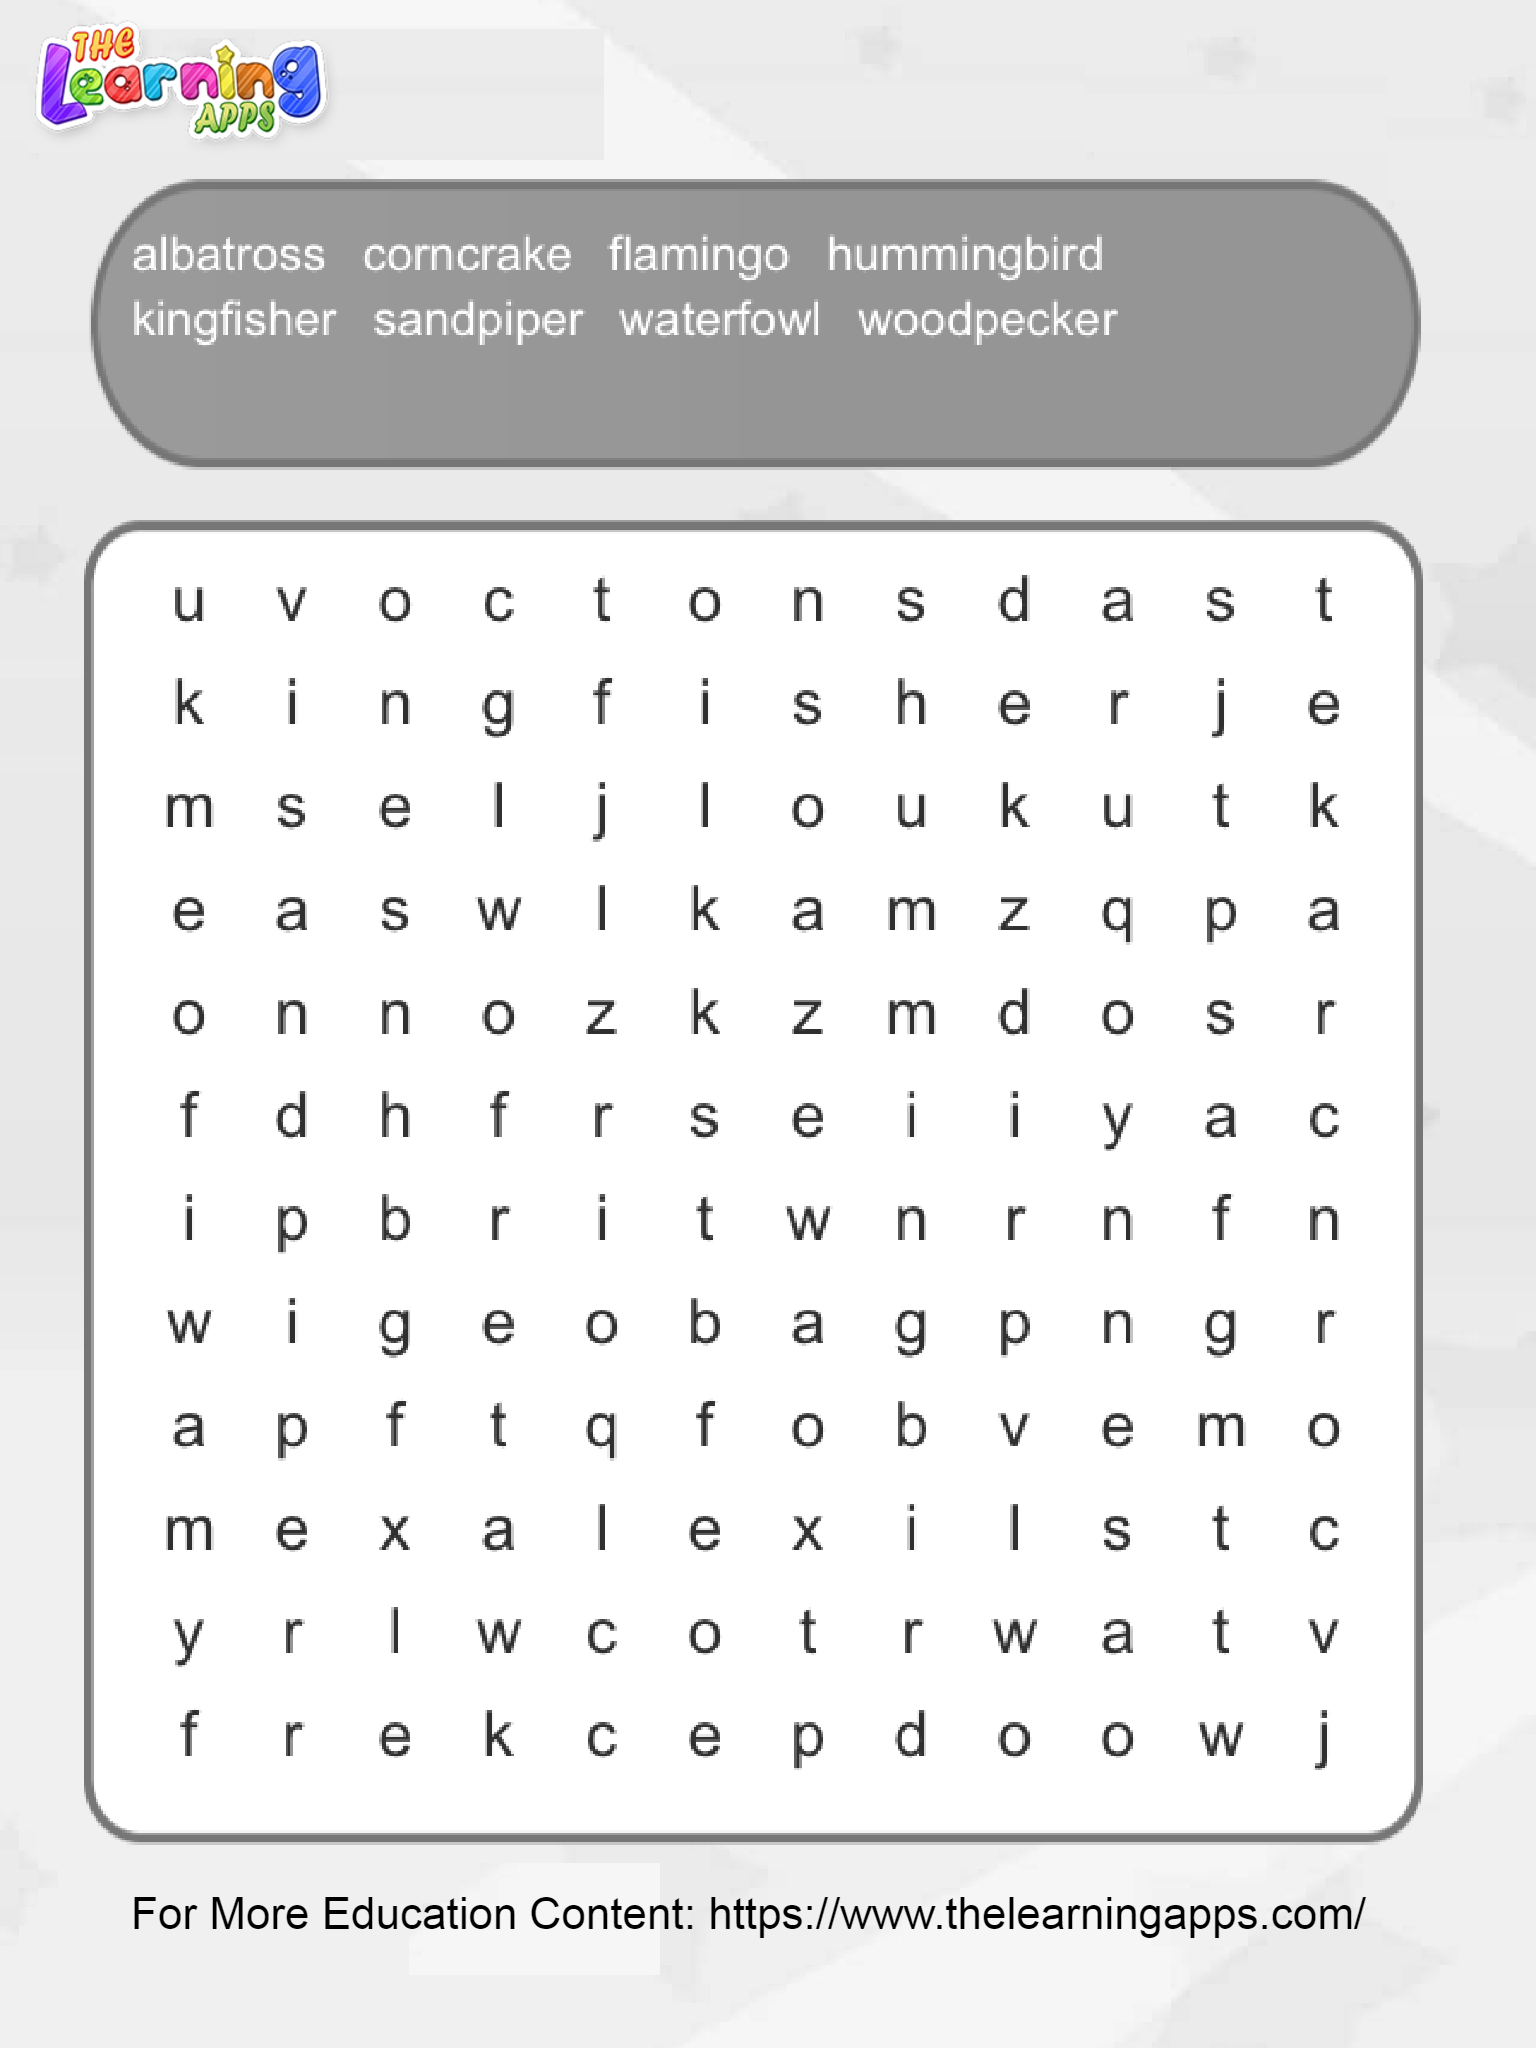 Bird Word Search Printables Free Reading Comprehension Worksheets Free Printable Word Searches Reading Comprehension Worksheets [ 2048 x 1536 Pixel ]